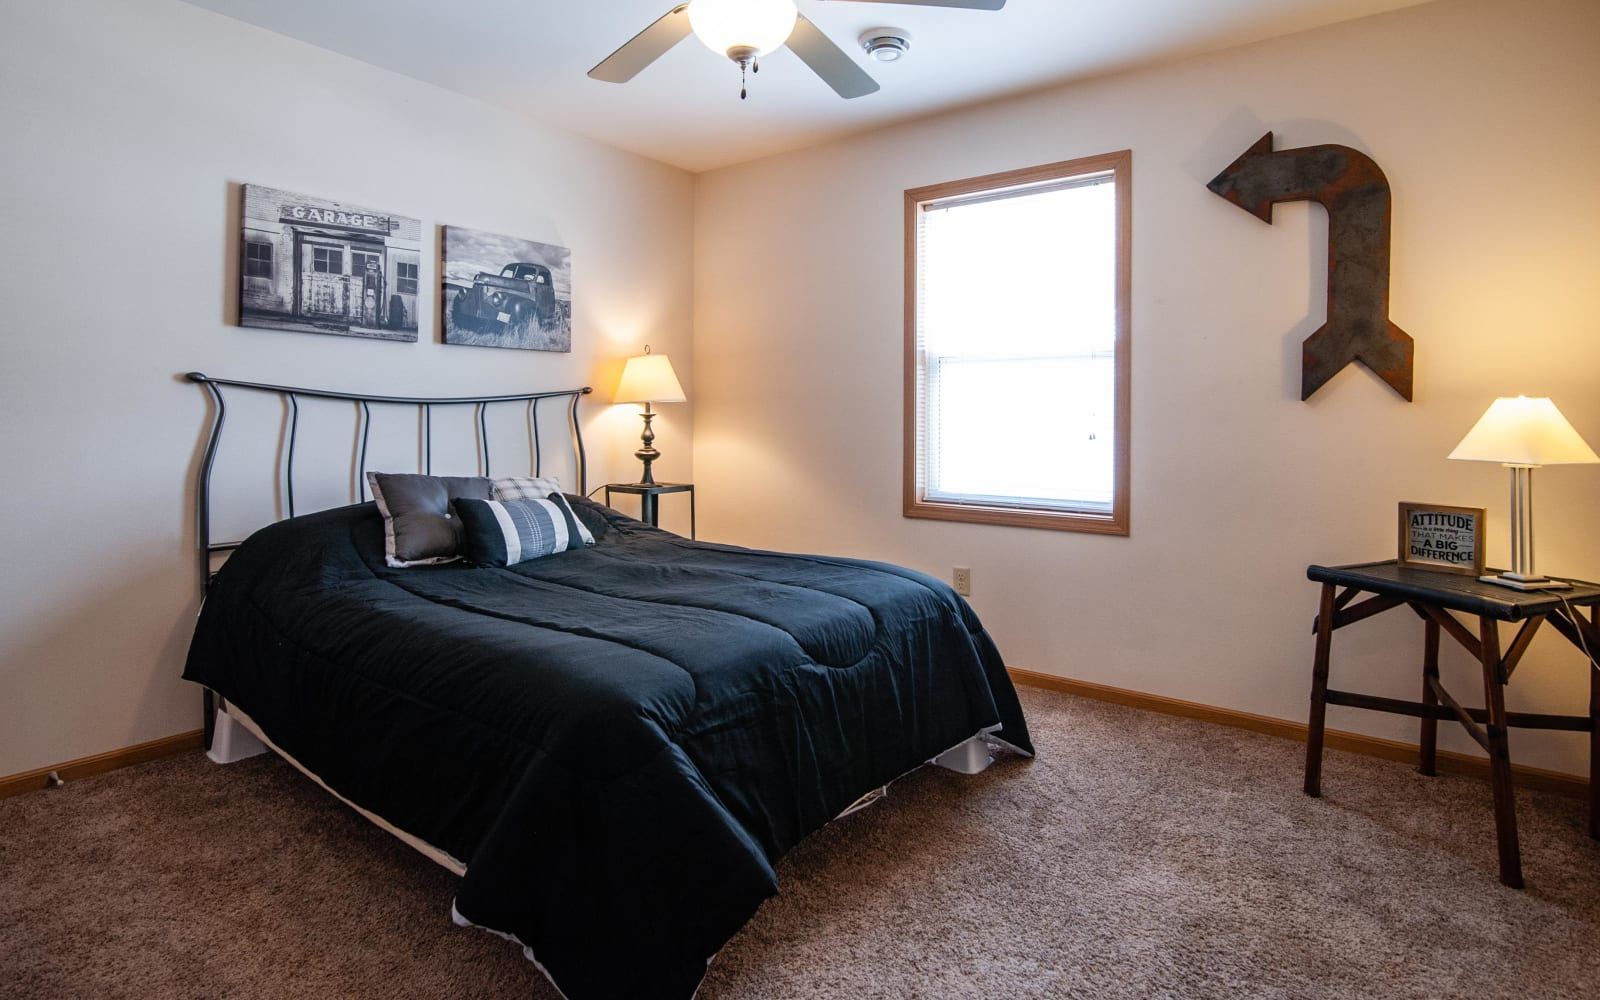 Bedroom with carpet at South Meadow in Ames, Iowa.